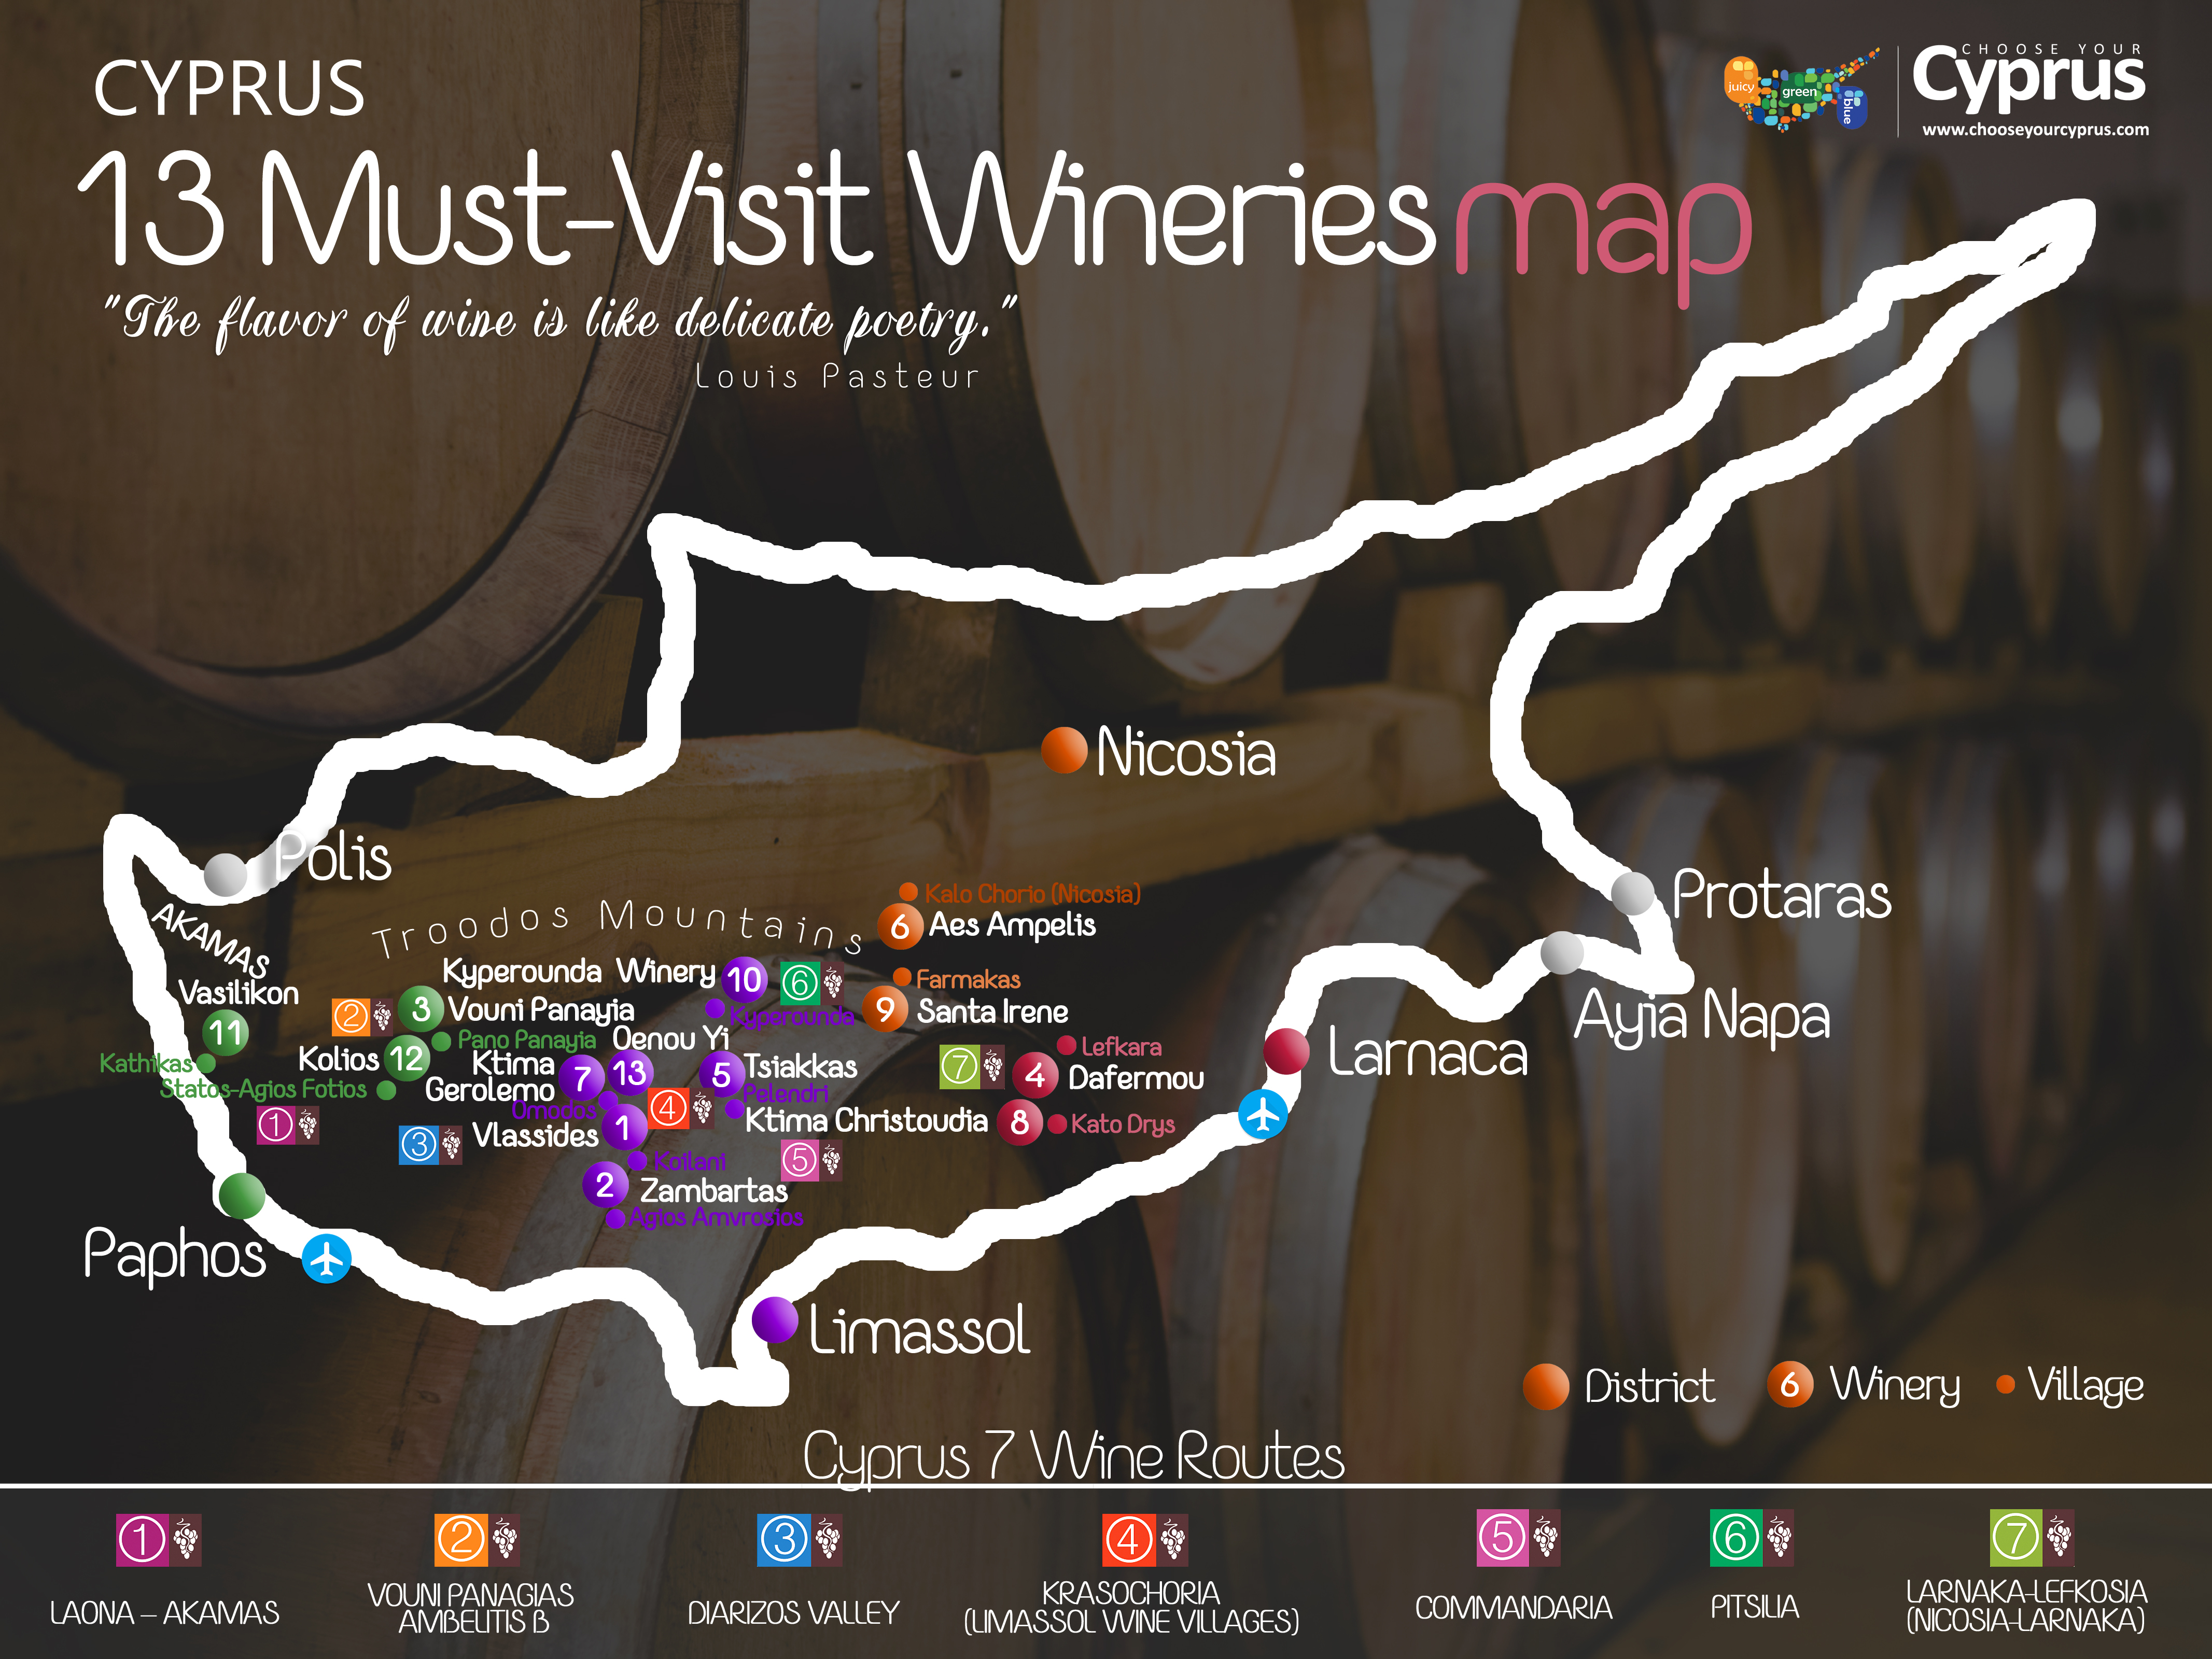 Cyprus must visit wineries enlarge map google map gumiabroncs Choice Image